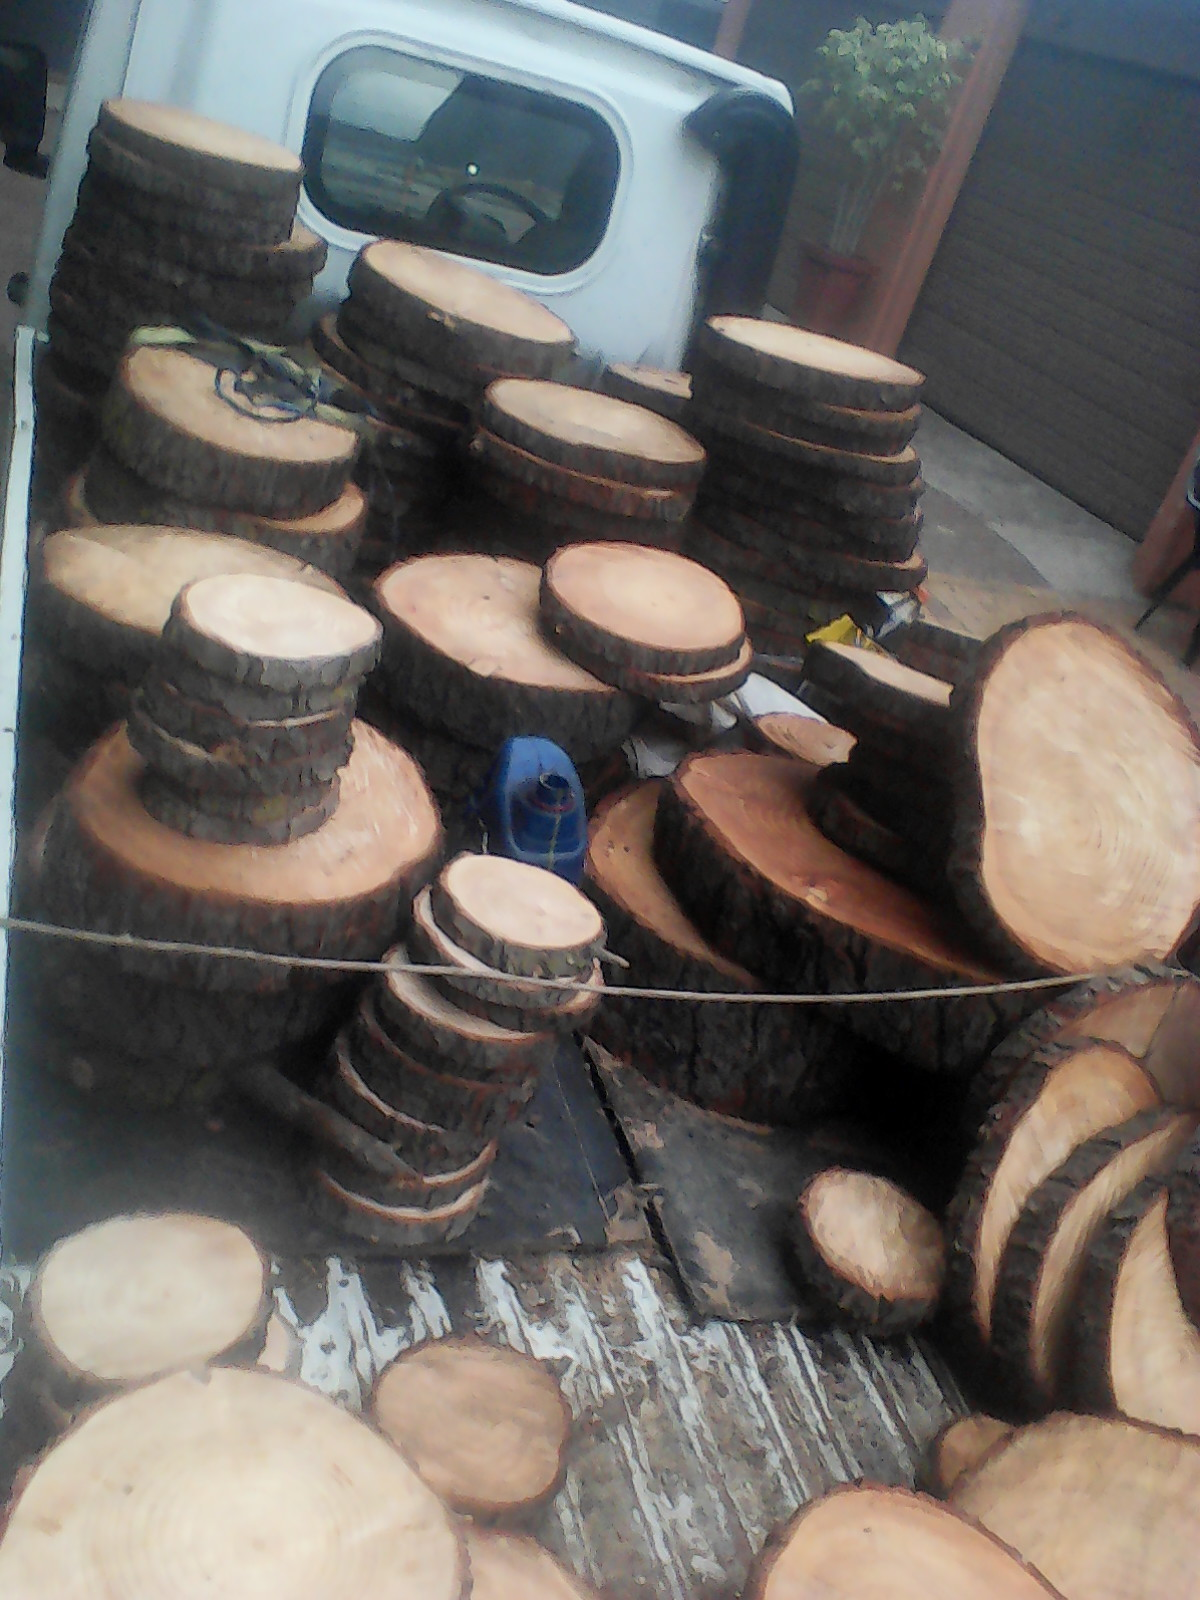 wood slices/discs for sale